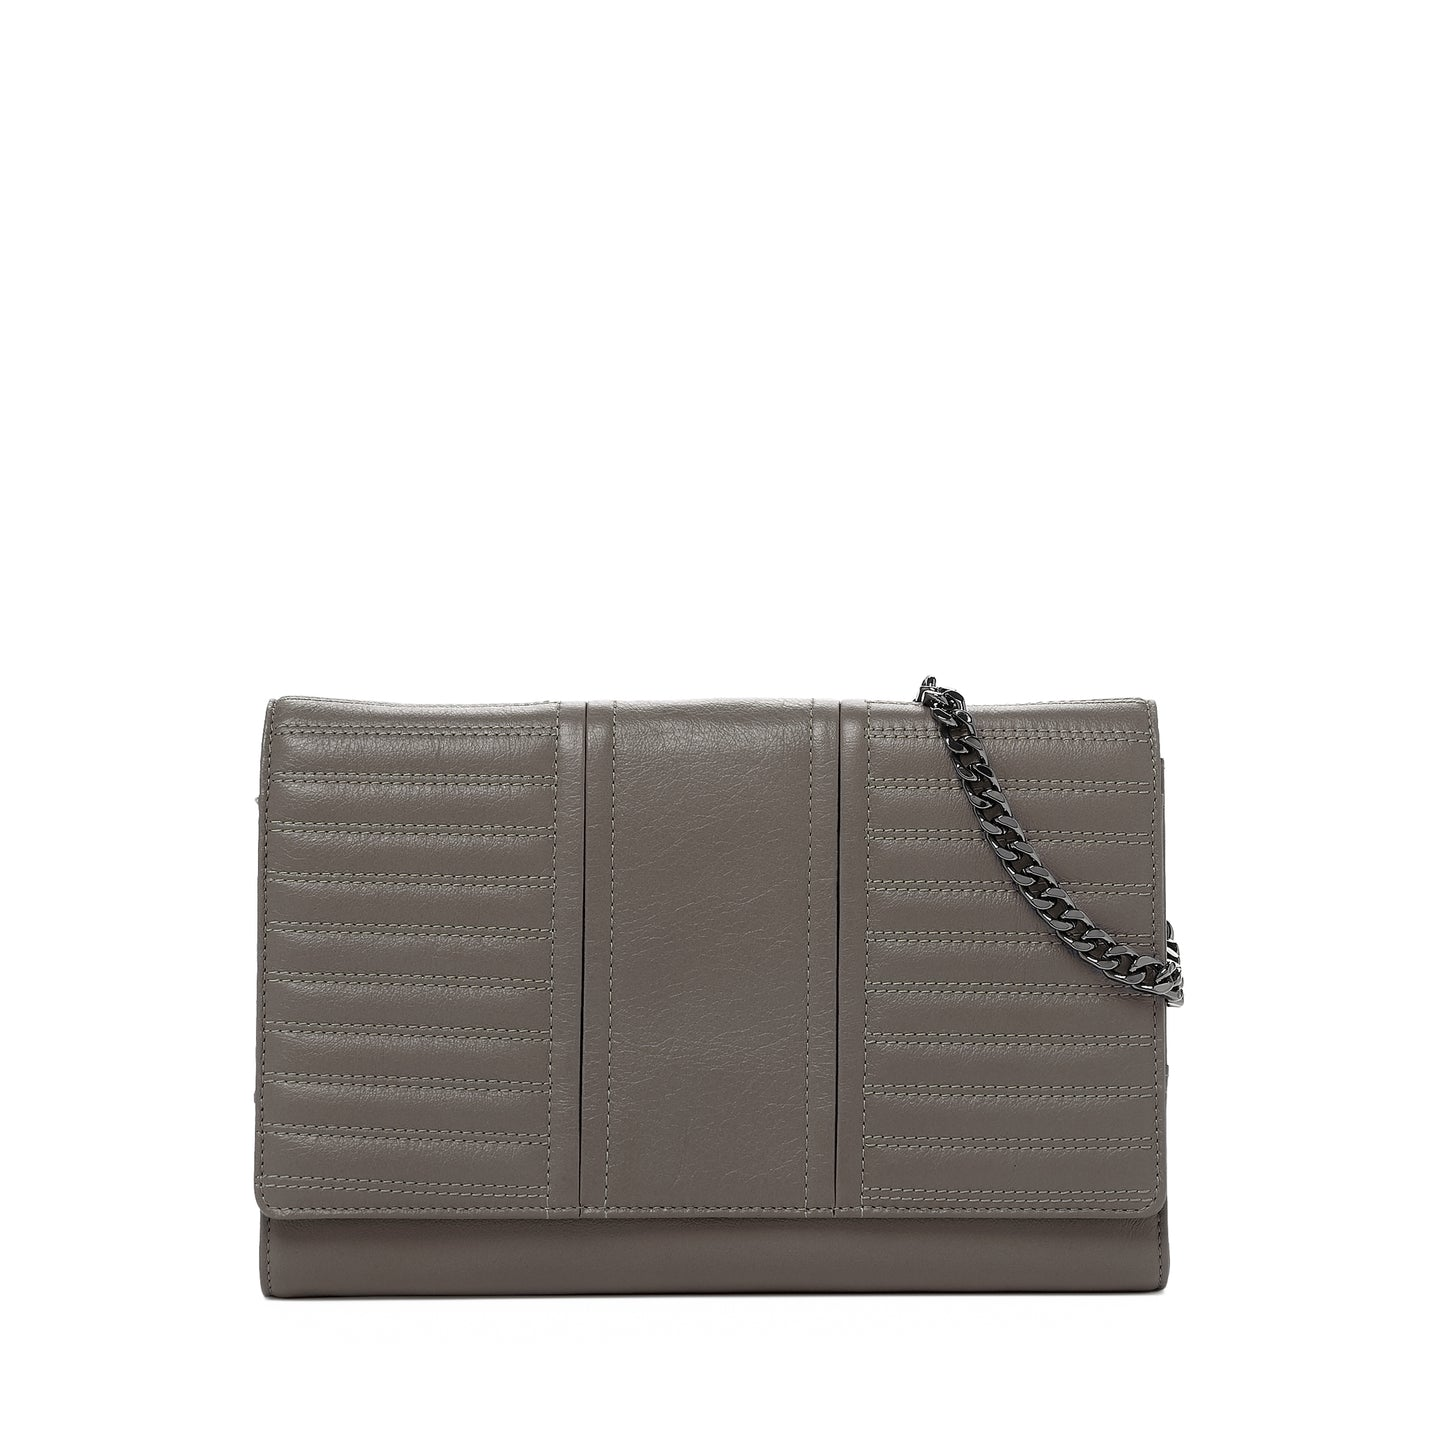 botkier moto wallet on a chain in winter grey